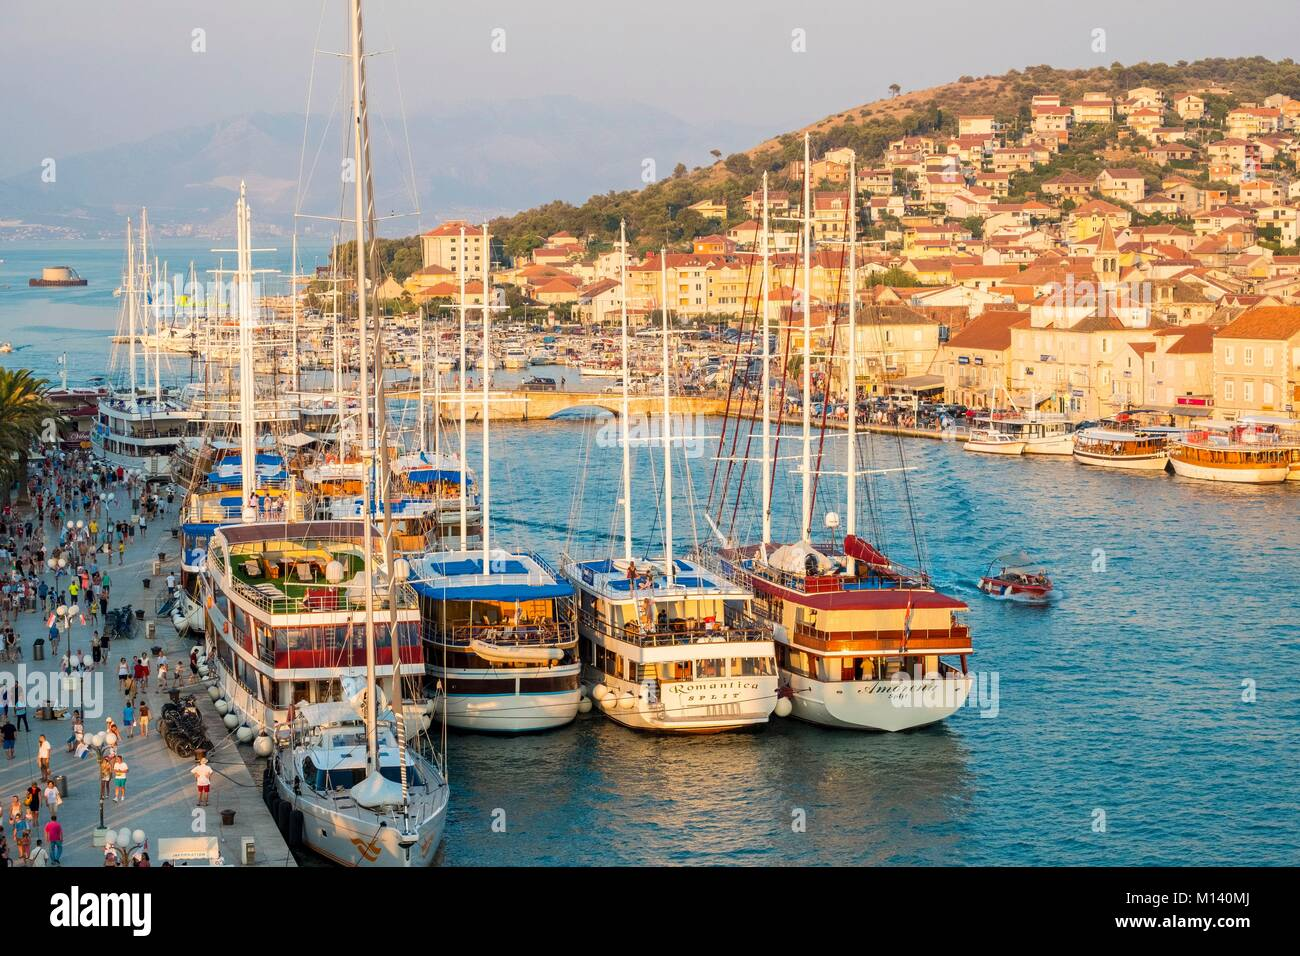 Croatia, Central Dalmatia, Dalmatian coast, Trogir, Historic Centre listed as World Heritage by UNESCO, Dockside - Stock Image